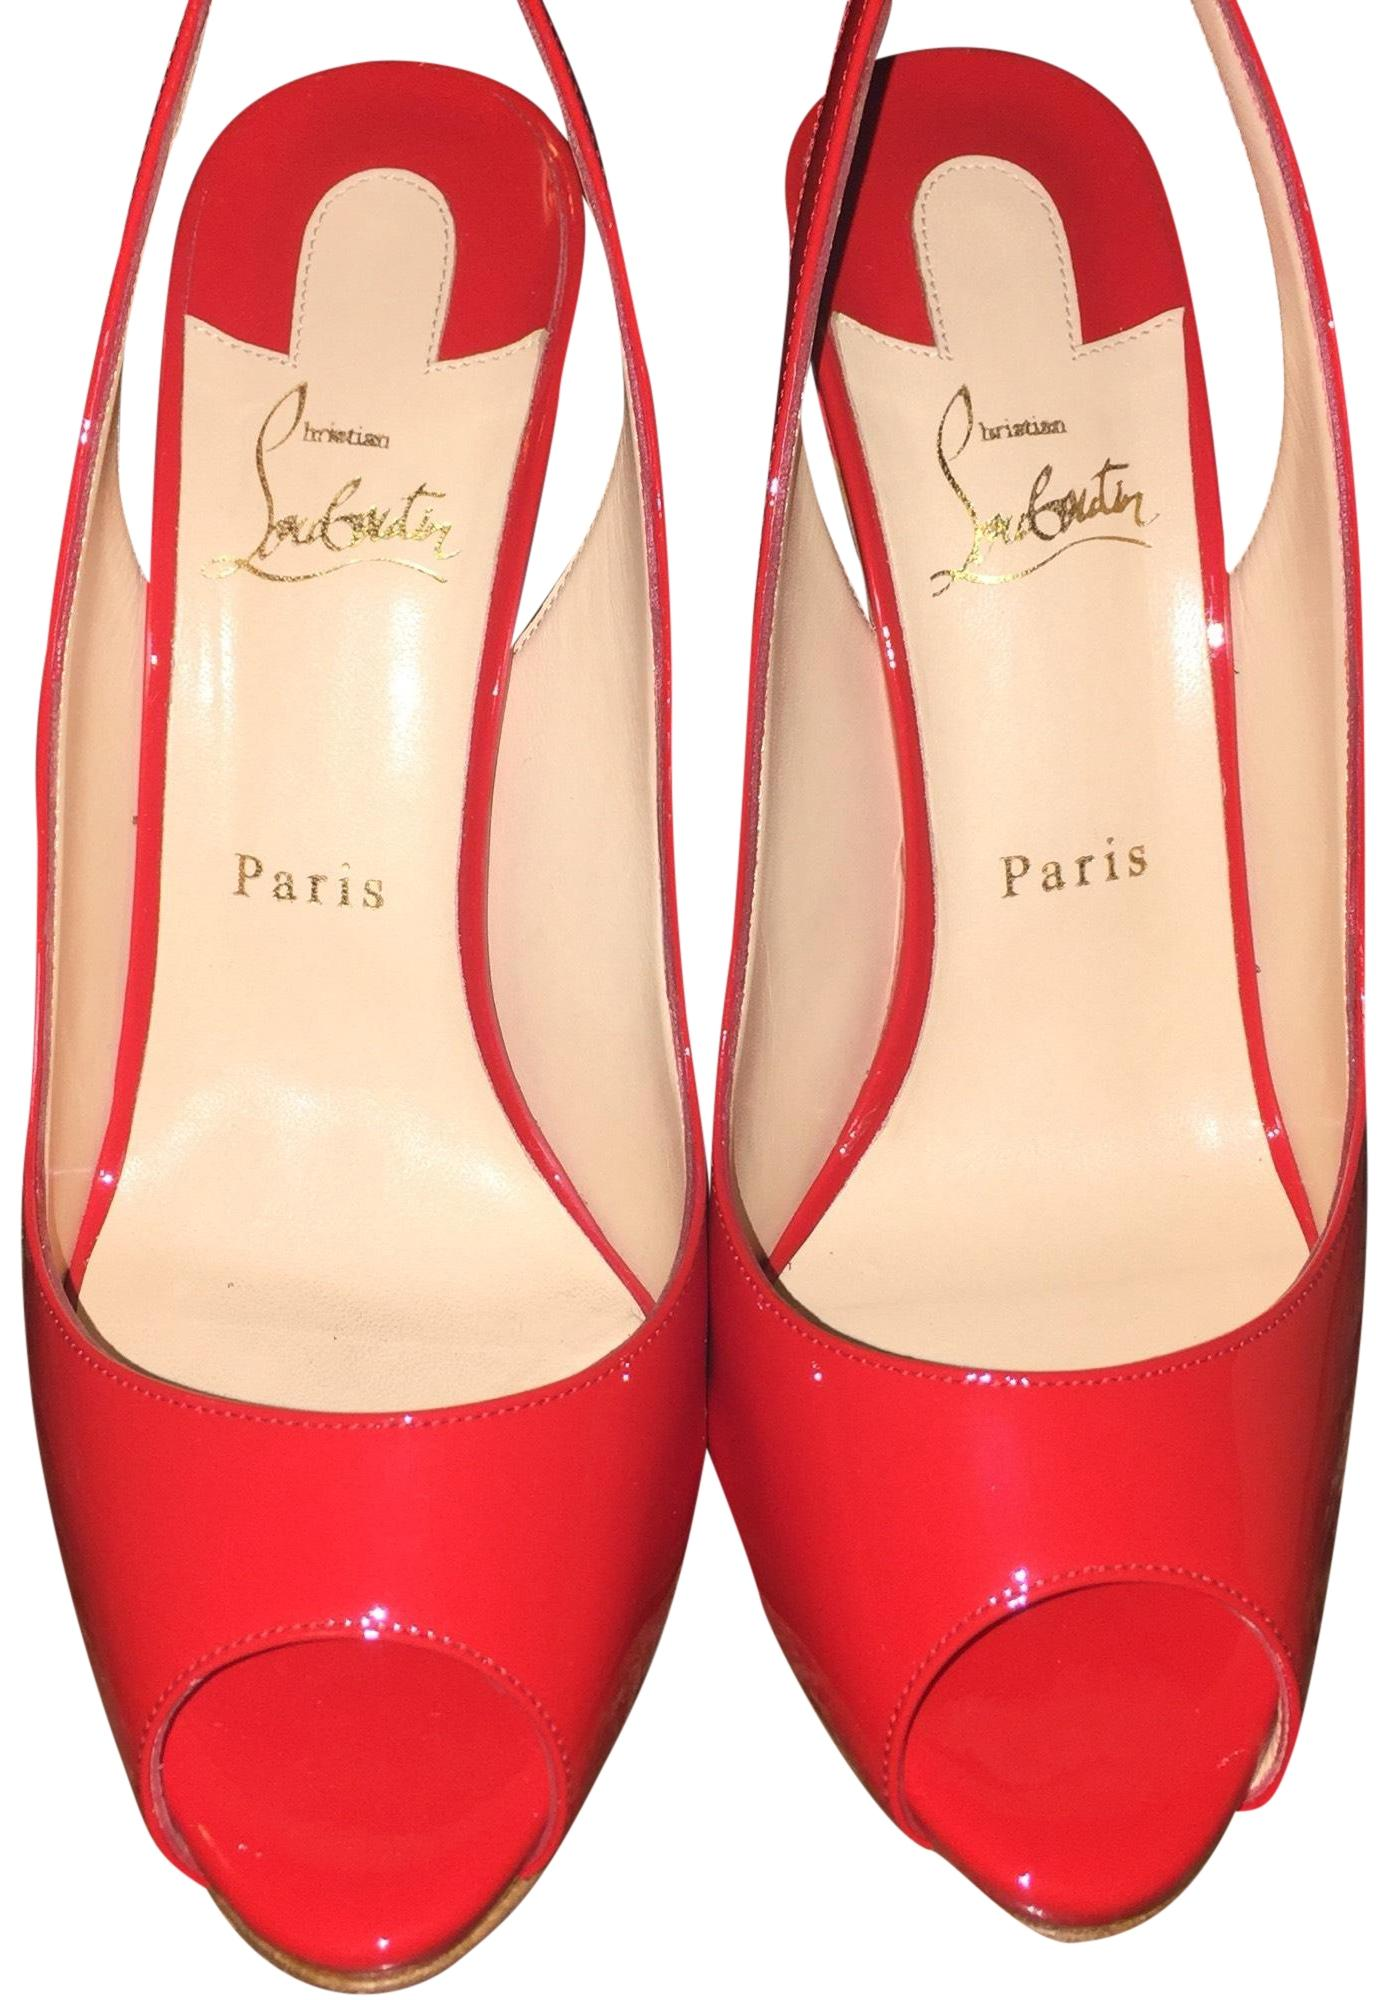 Christian Louboutin Red Flo Sling 120 Patent Pumps Size US 10 Regular (M, B)